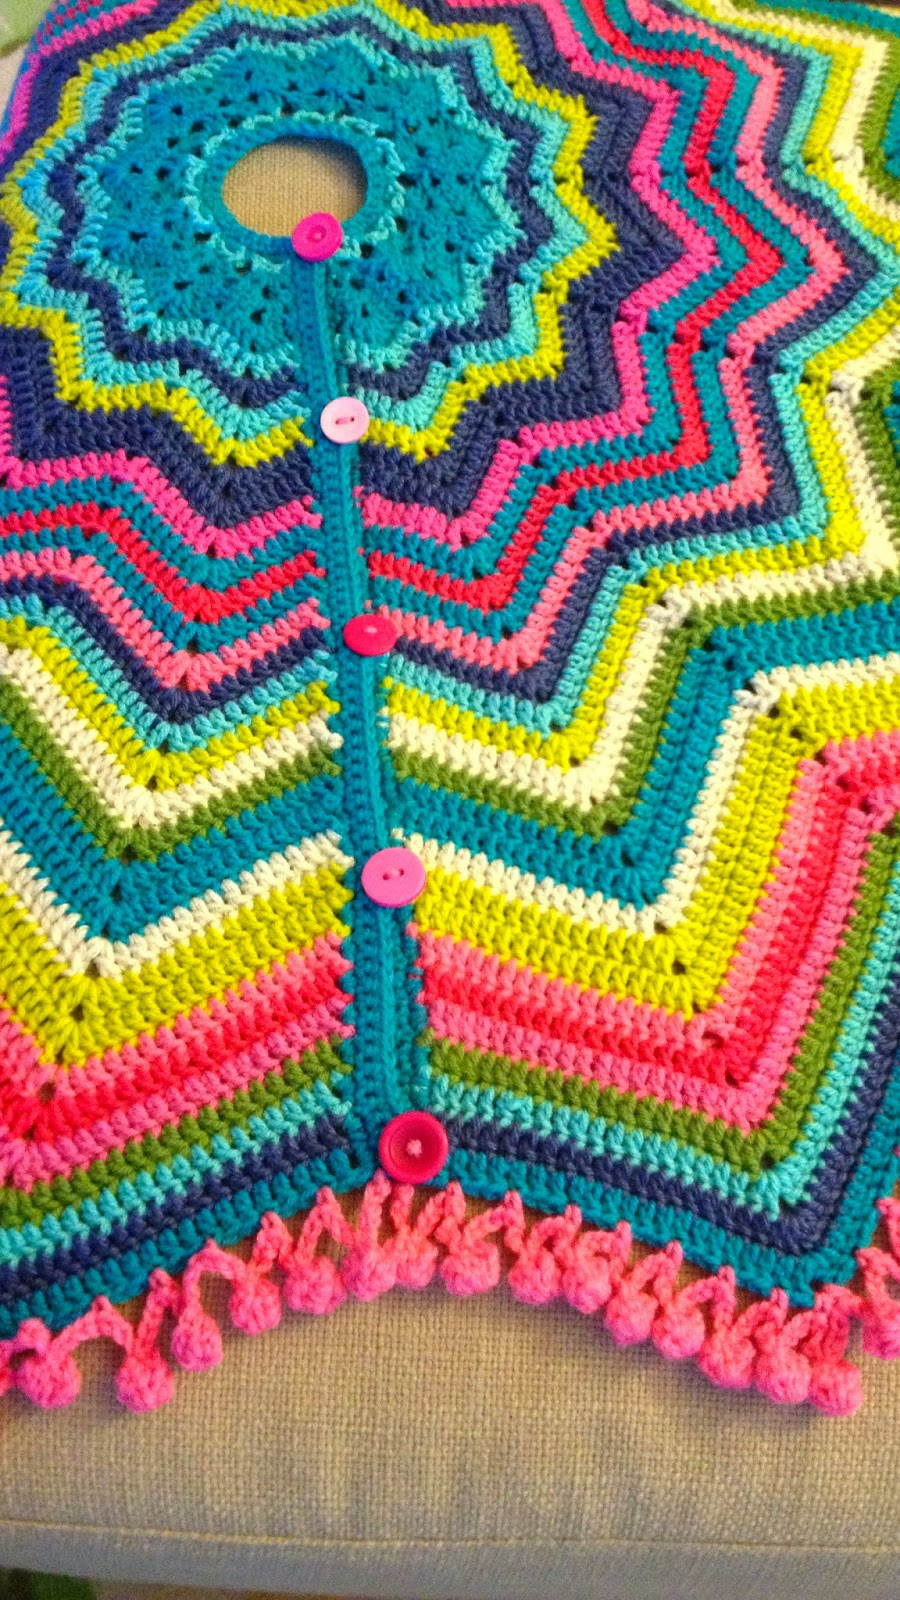 Crochet Tree Skirt Pattern Lovely Ce Upon A Pink Moon the Silver Tree Of Beautiful 50 Ideas Crochet Tree Skirt Pattern